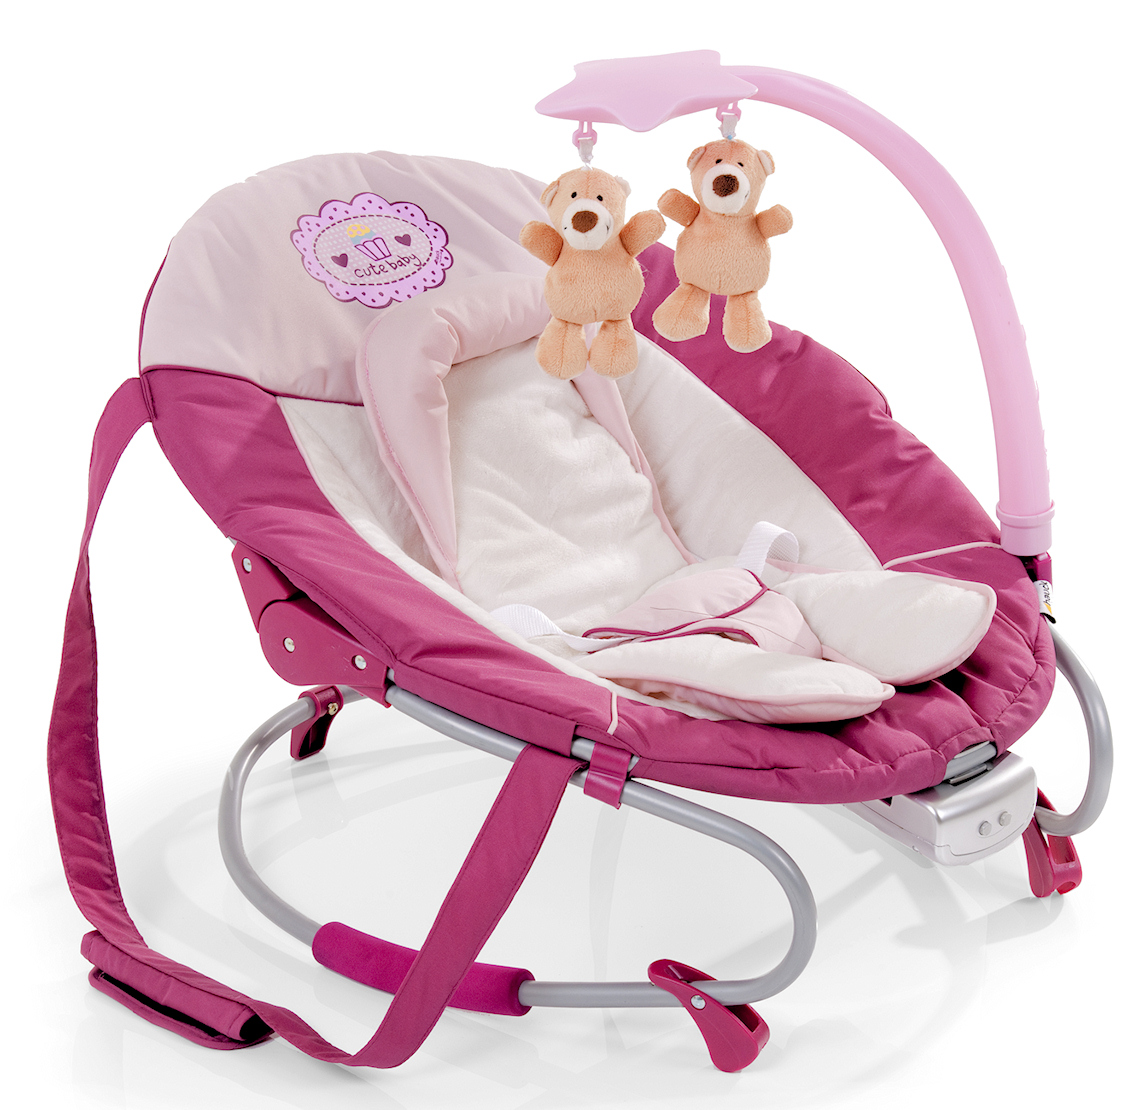 Hauck Cute Baby Pink Leisure E Motion Bungee Baby Bouncer